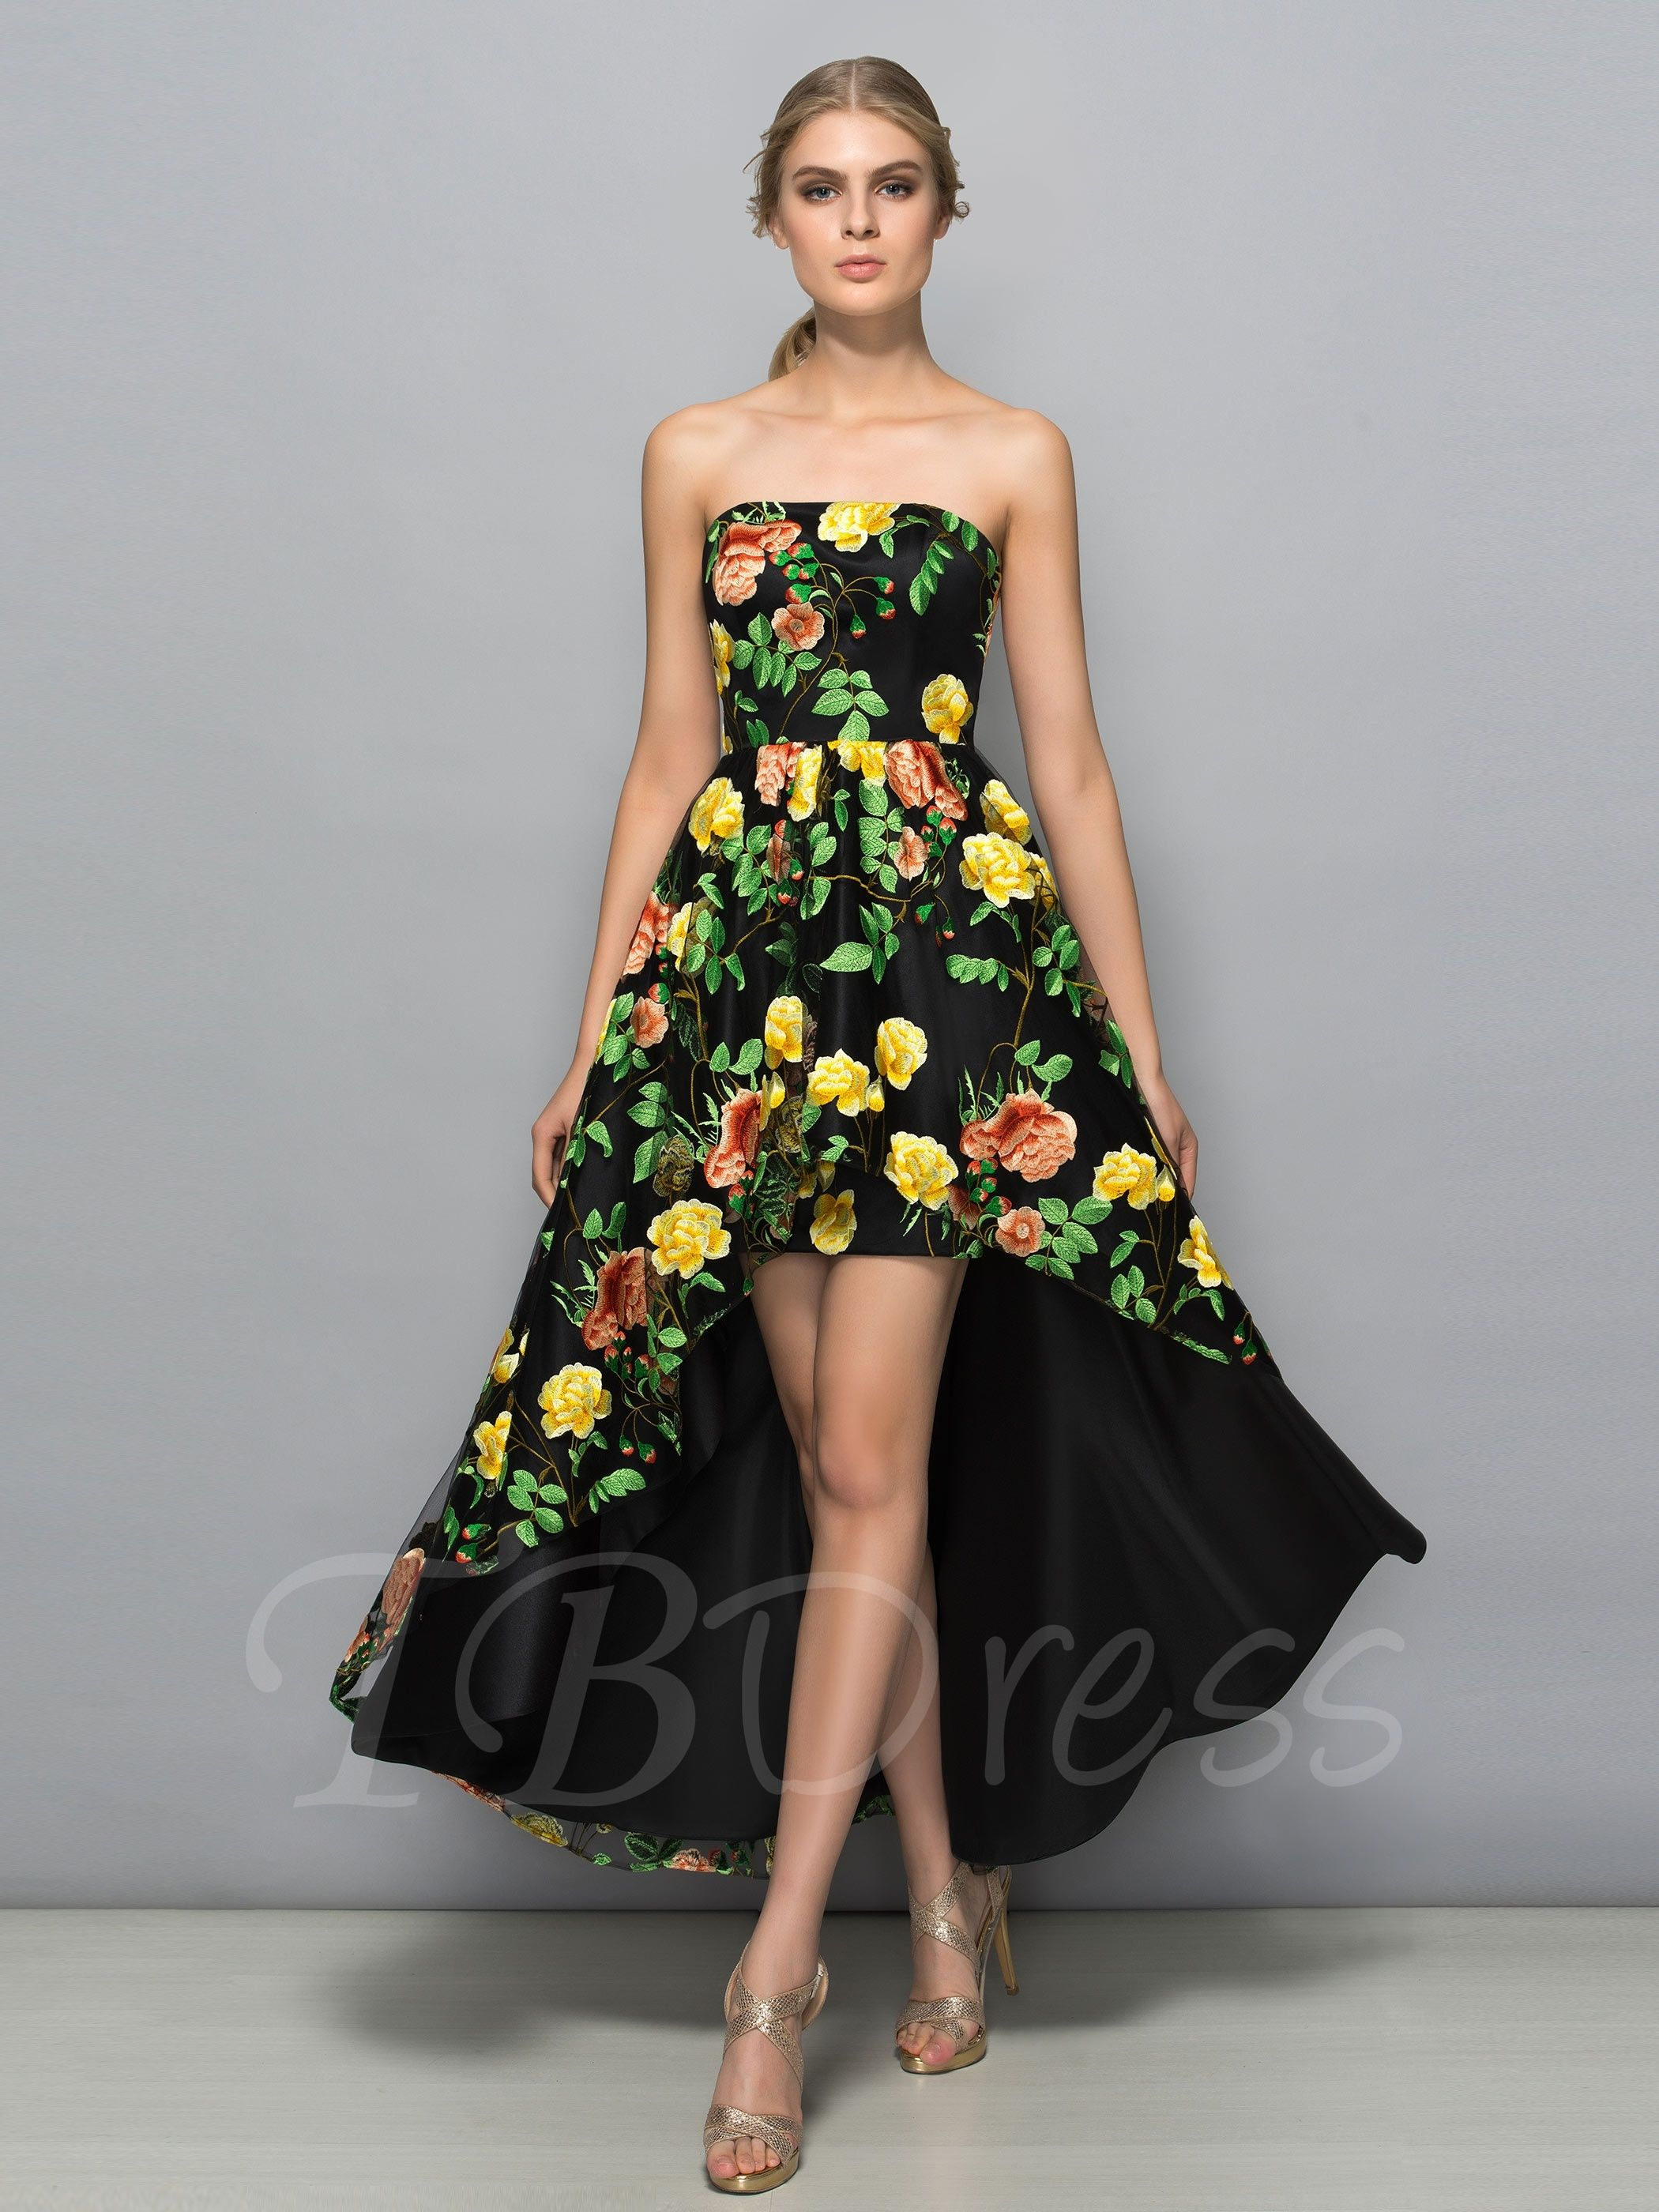 Strapless A Line Hollow Printed Asymmetry Cocktail Dress Printed Prom Dresses Strapless Cocktail Dresses Trendy Cocktail Dresses [ 2800 x 2100 Pixel ]